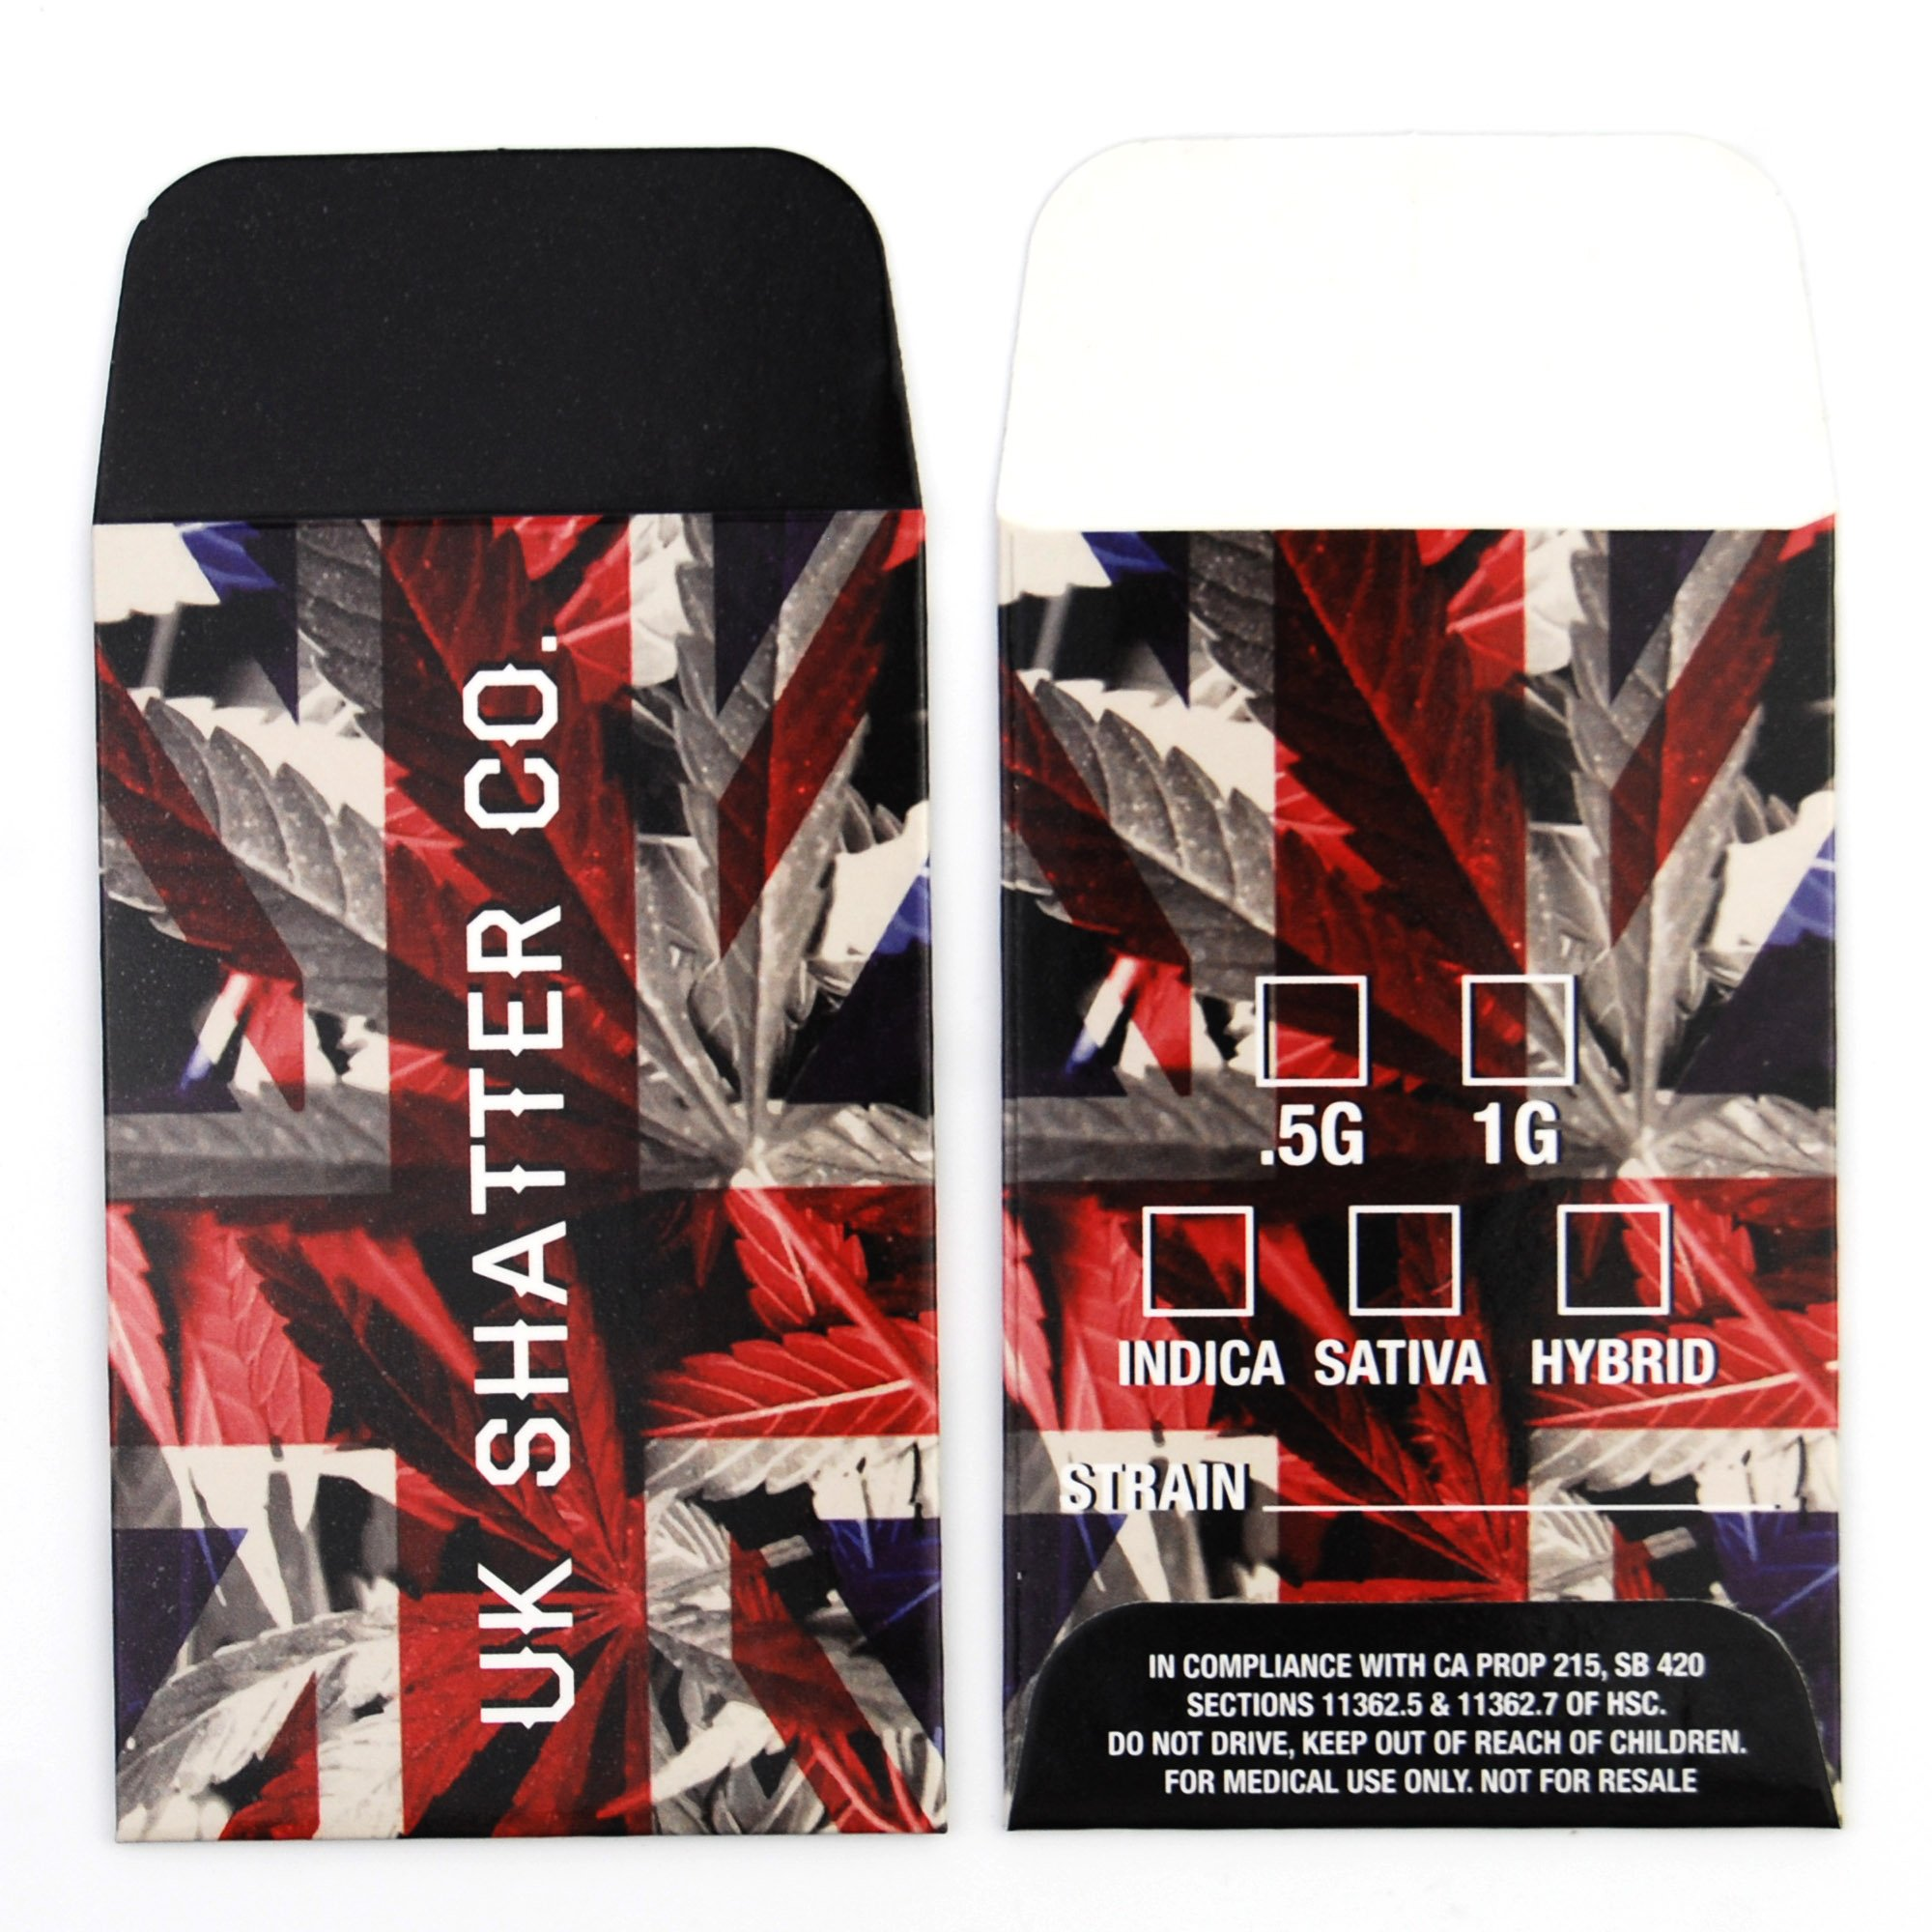 250 UK Shatter Company Premium Concentrate Packaging Extract Envelopes #094 by Shatter Labels